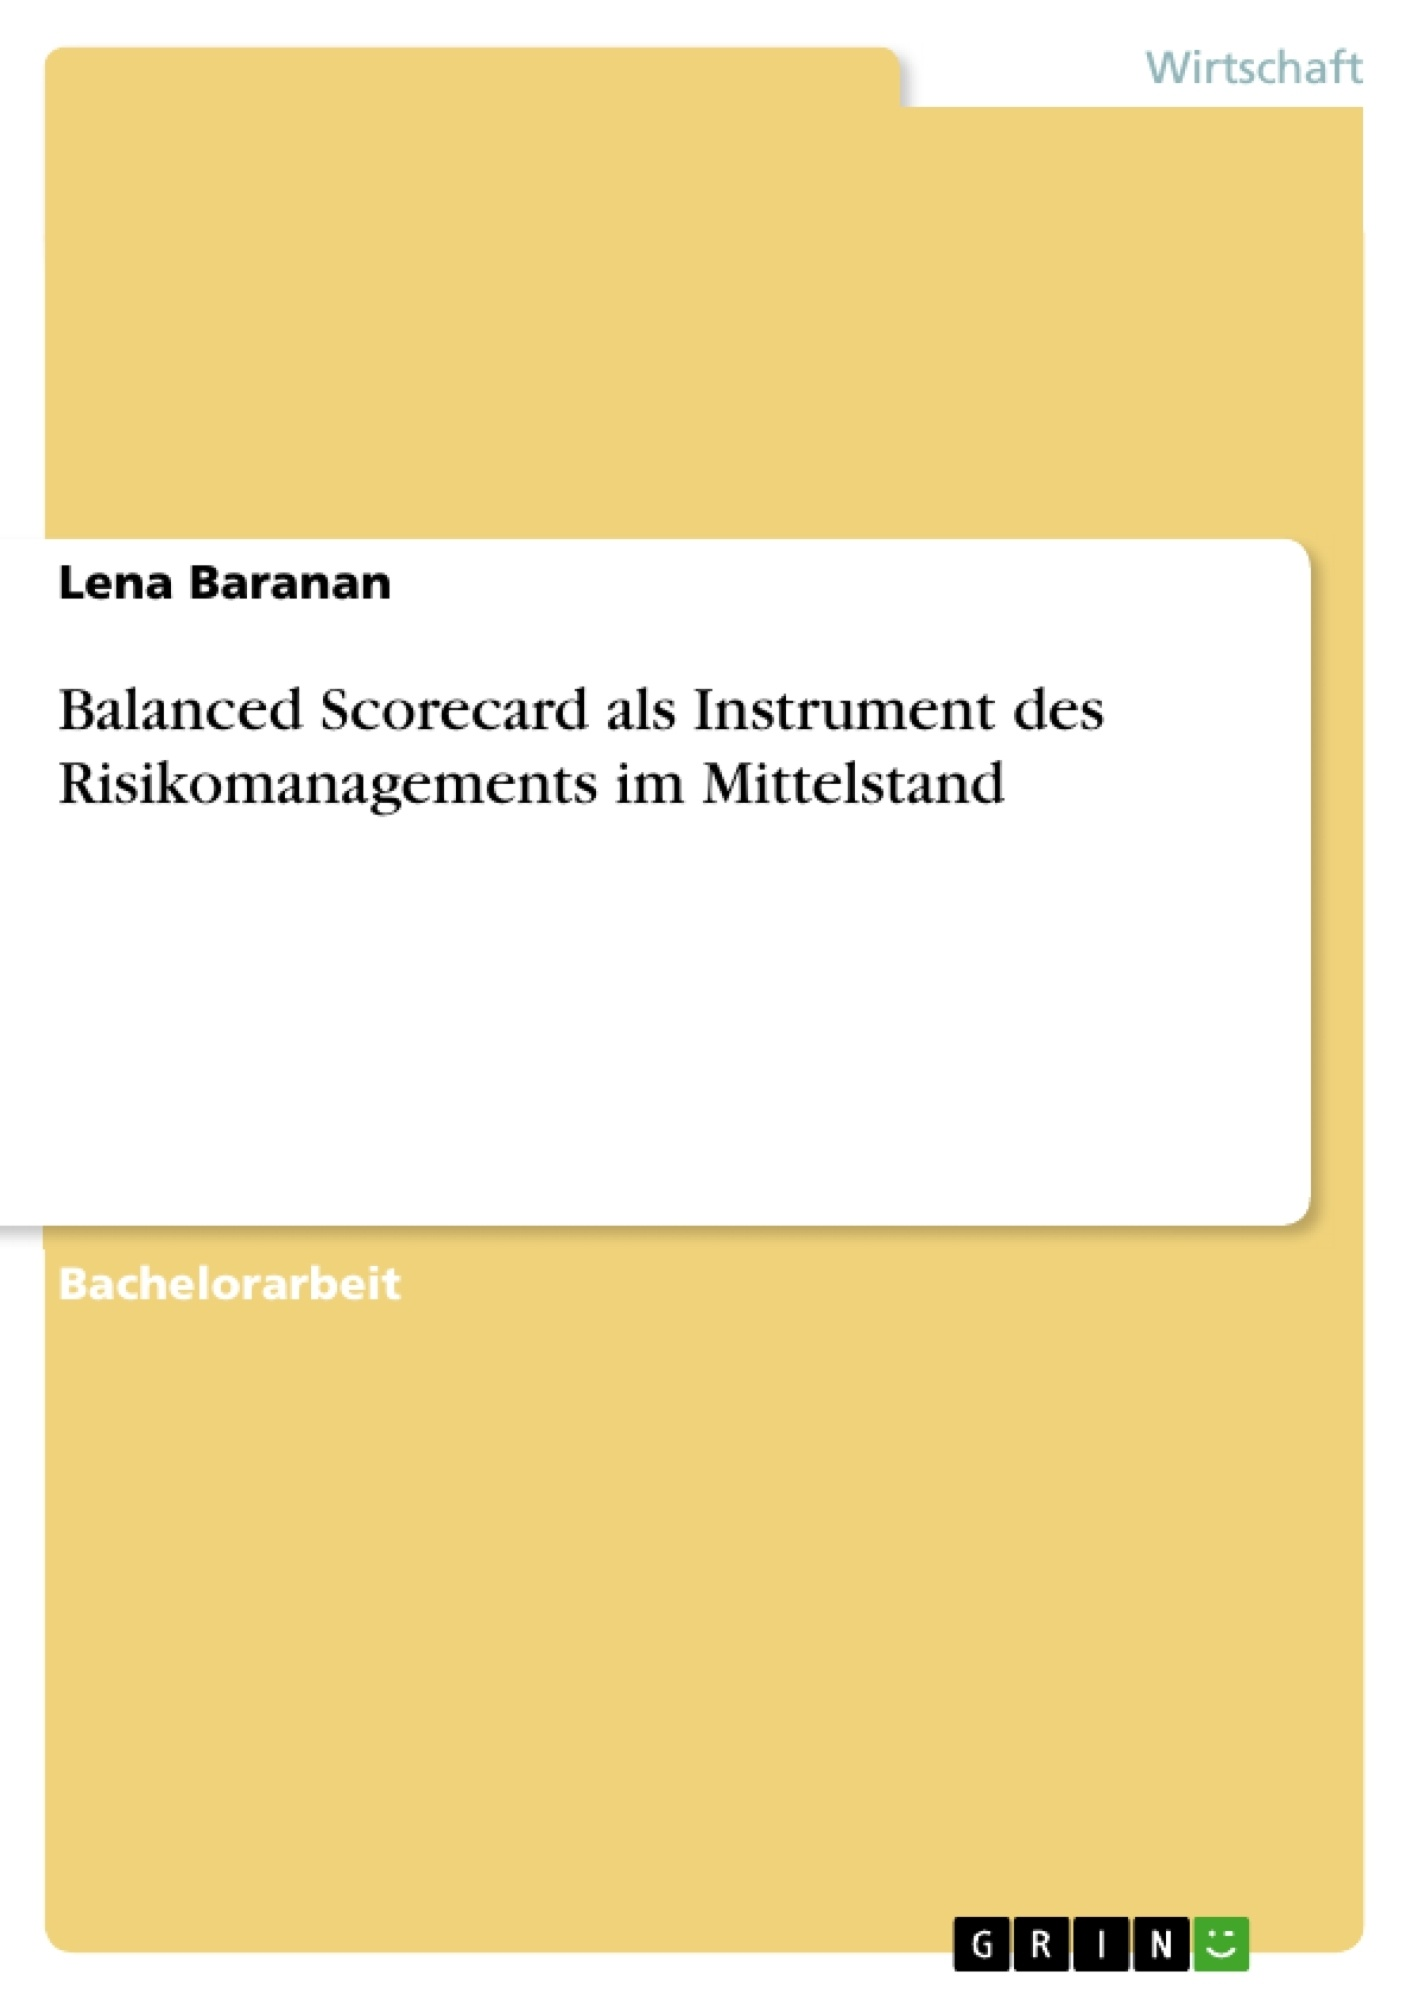 Risikomanagement mittelstand